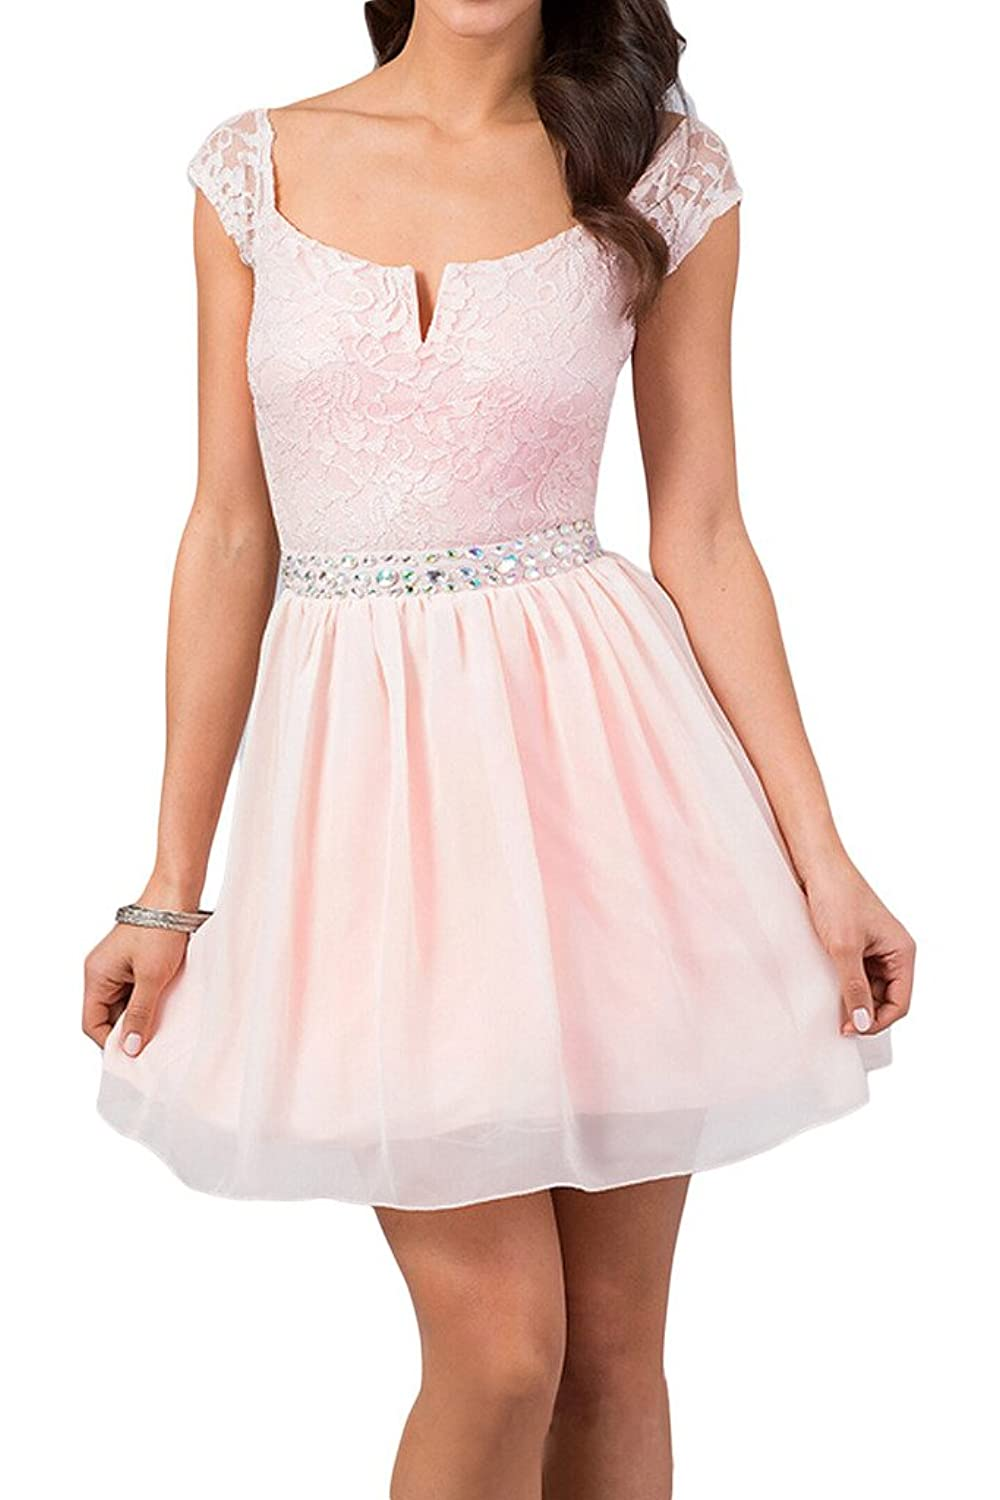 Gorgeous Bridal Mini Lace Sparkling Rhinestones Prom Party Cocktail Dresses